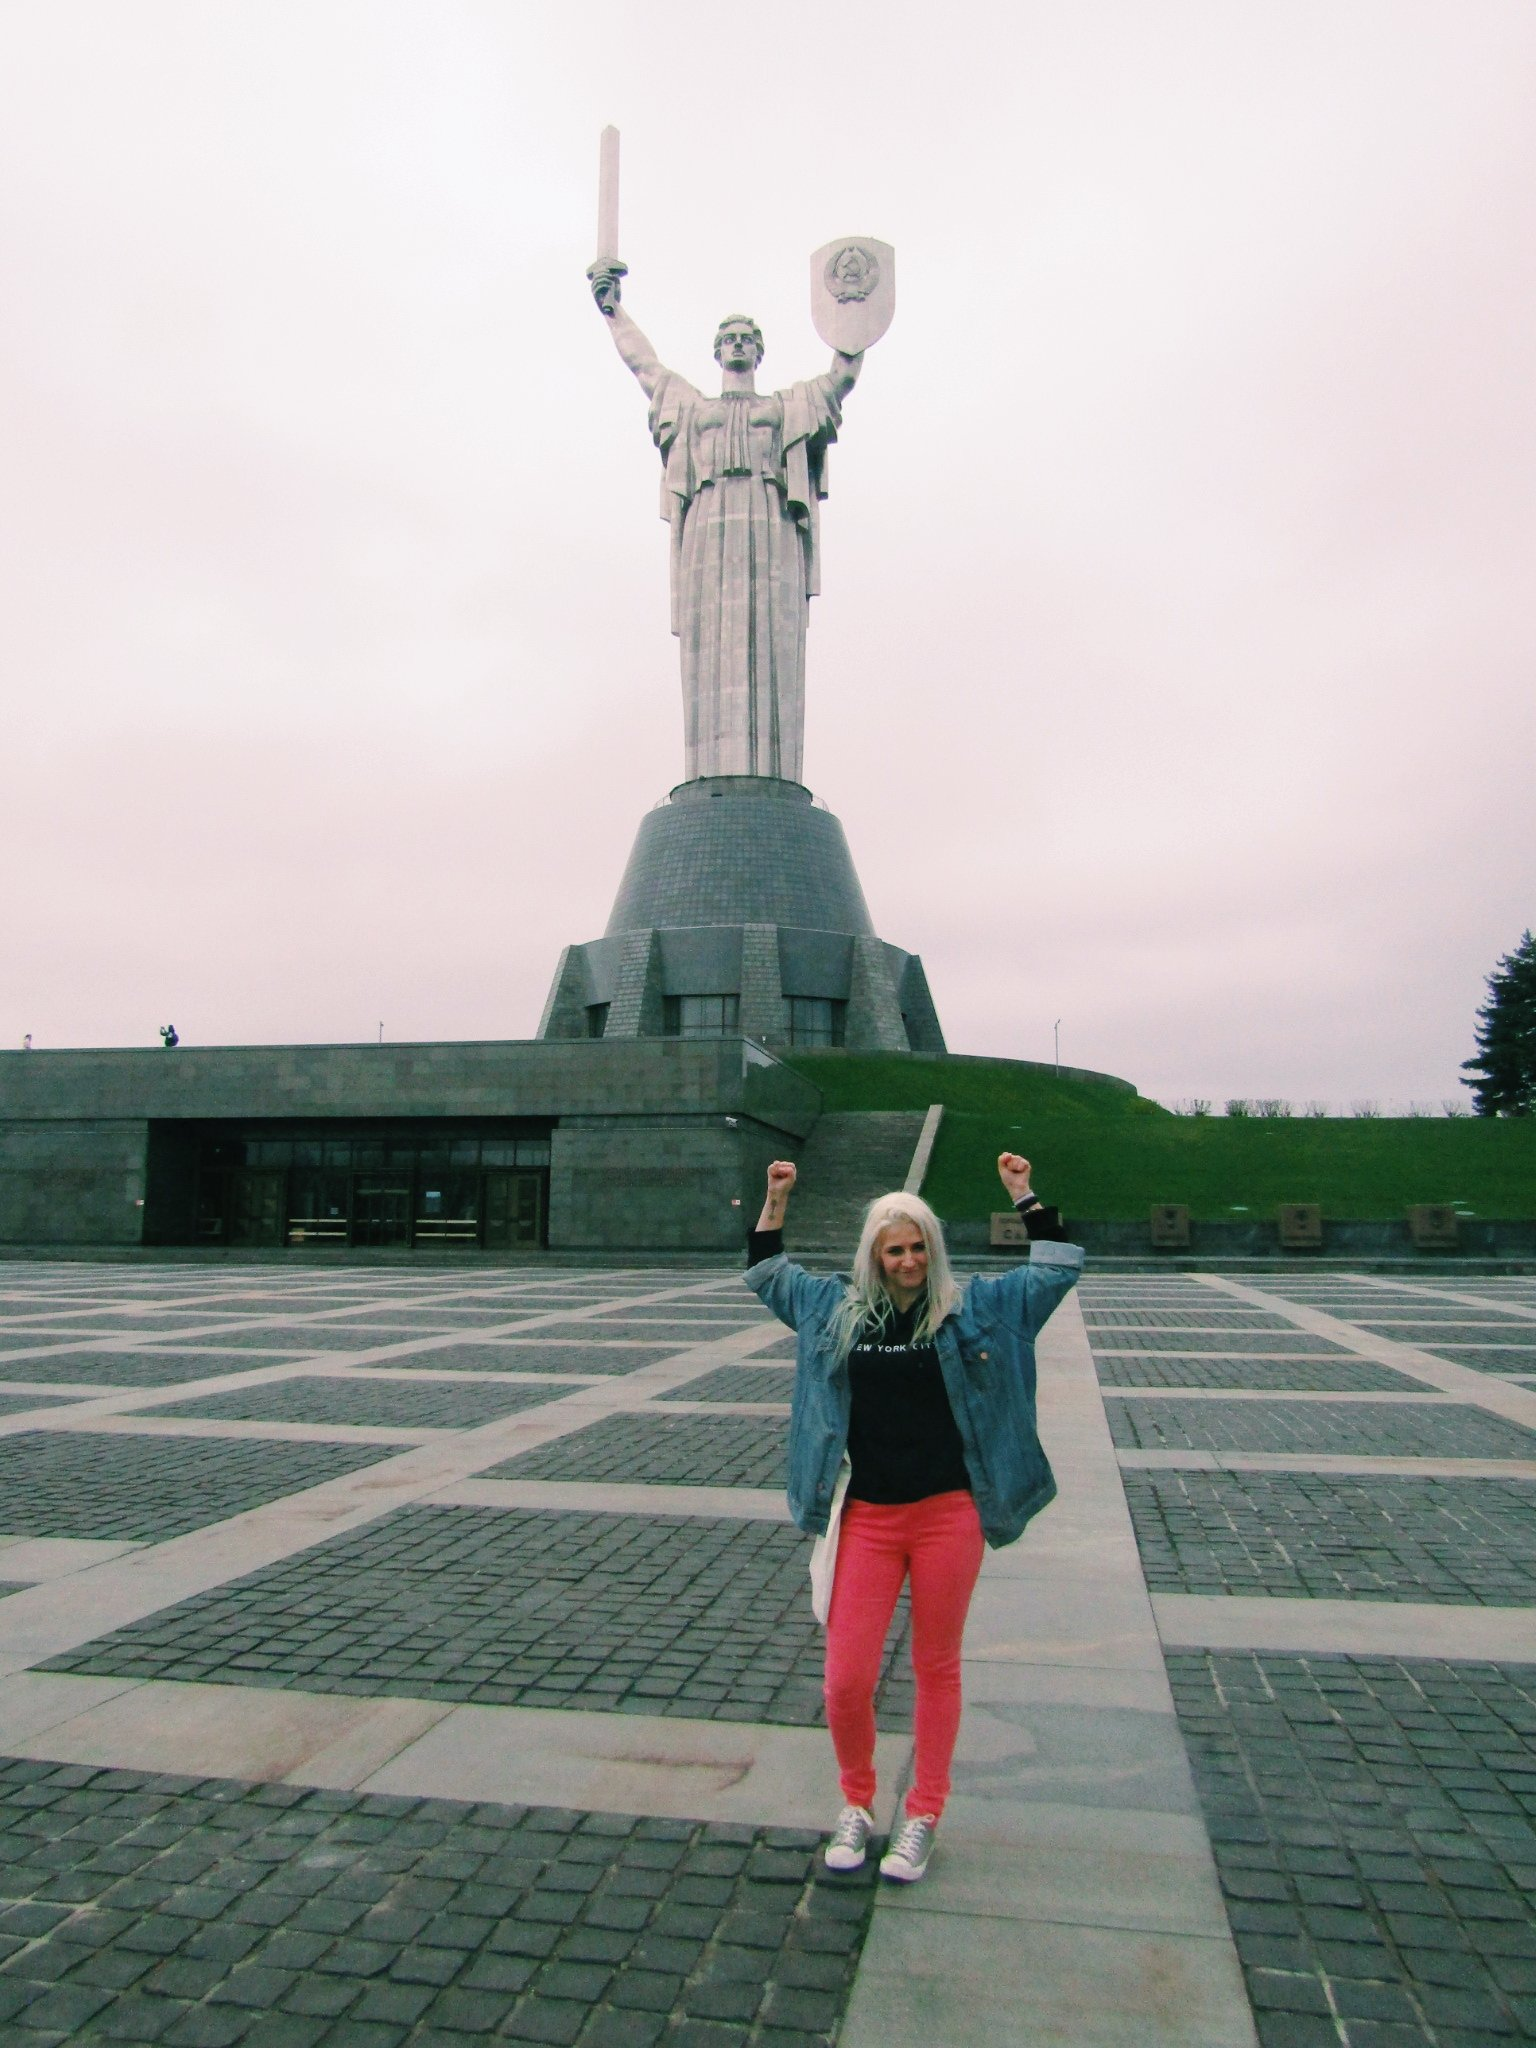 Secret Restaurants, 11th Century Monasteries & Badass Statues in Kiev, Ukraine